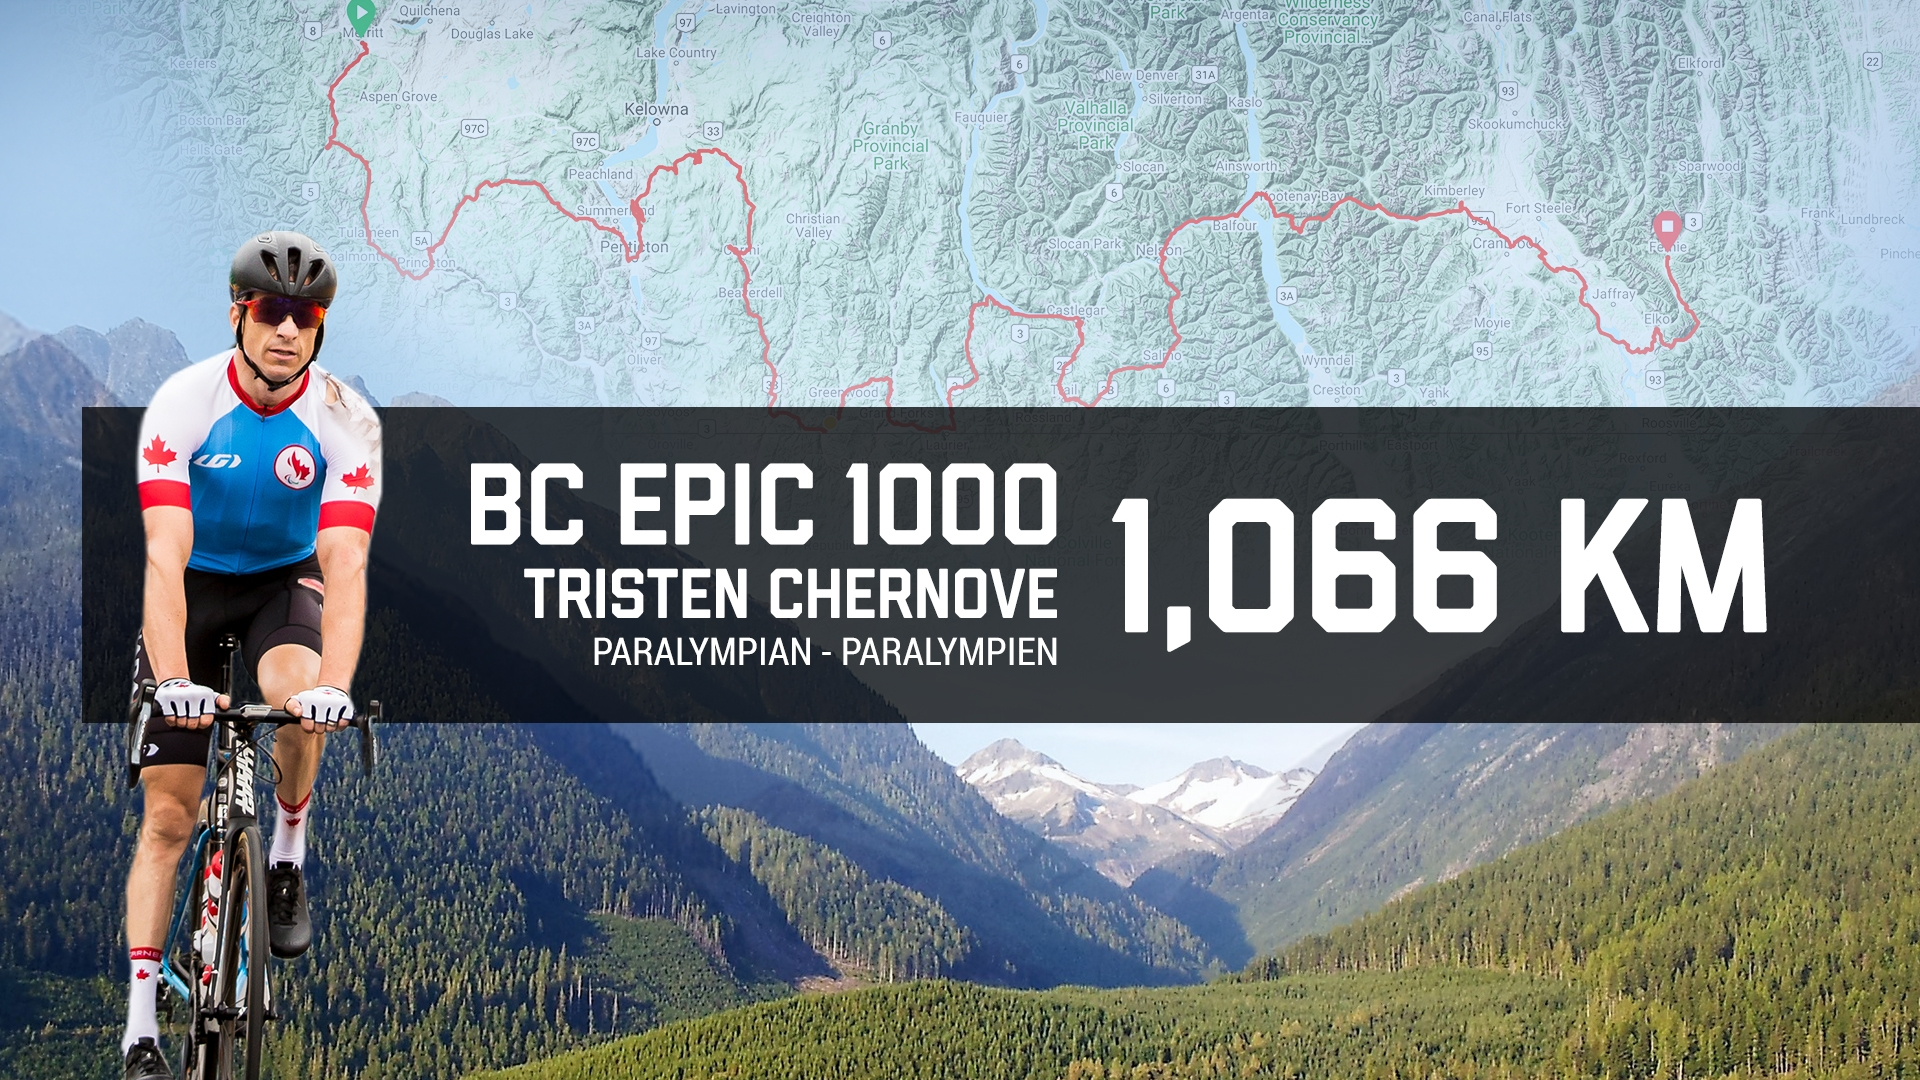 An image of Tristen Chernove on a bike overlaid on the BC Epic 1000 route